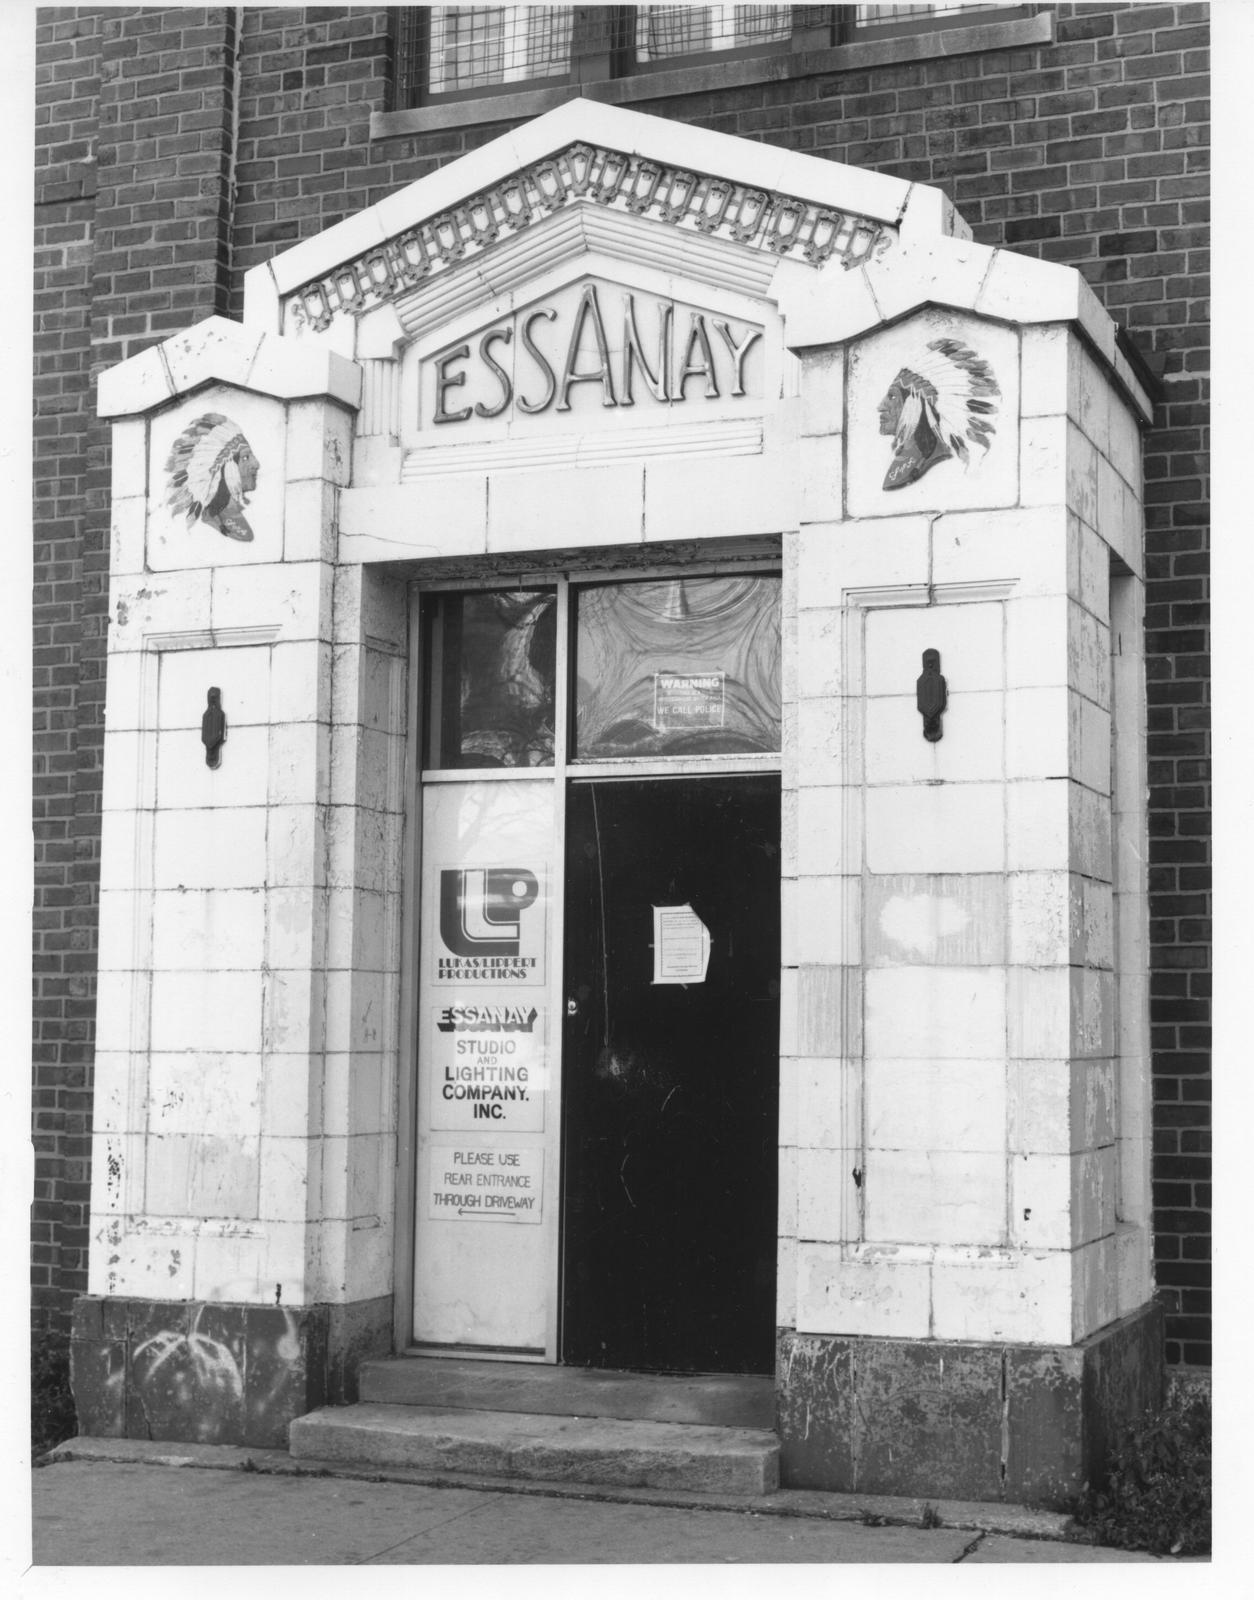 Photo of the Essanay Studios entrance by Robert W. Kruger.